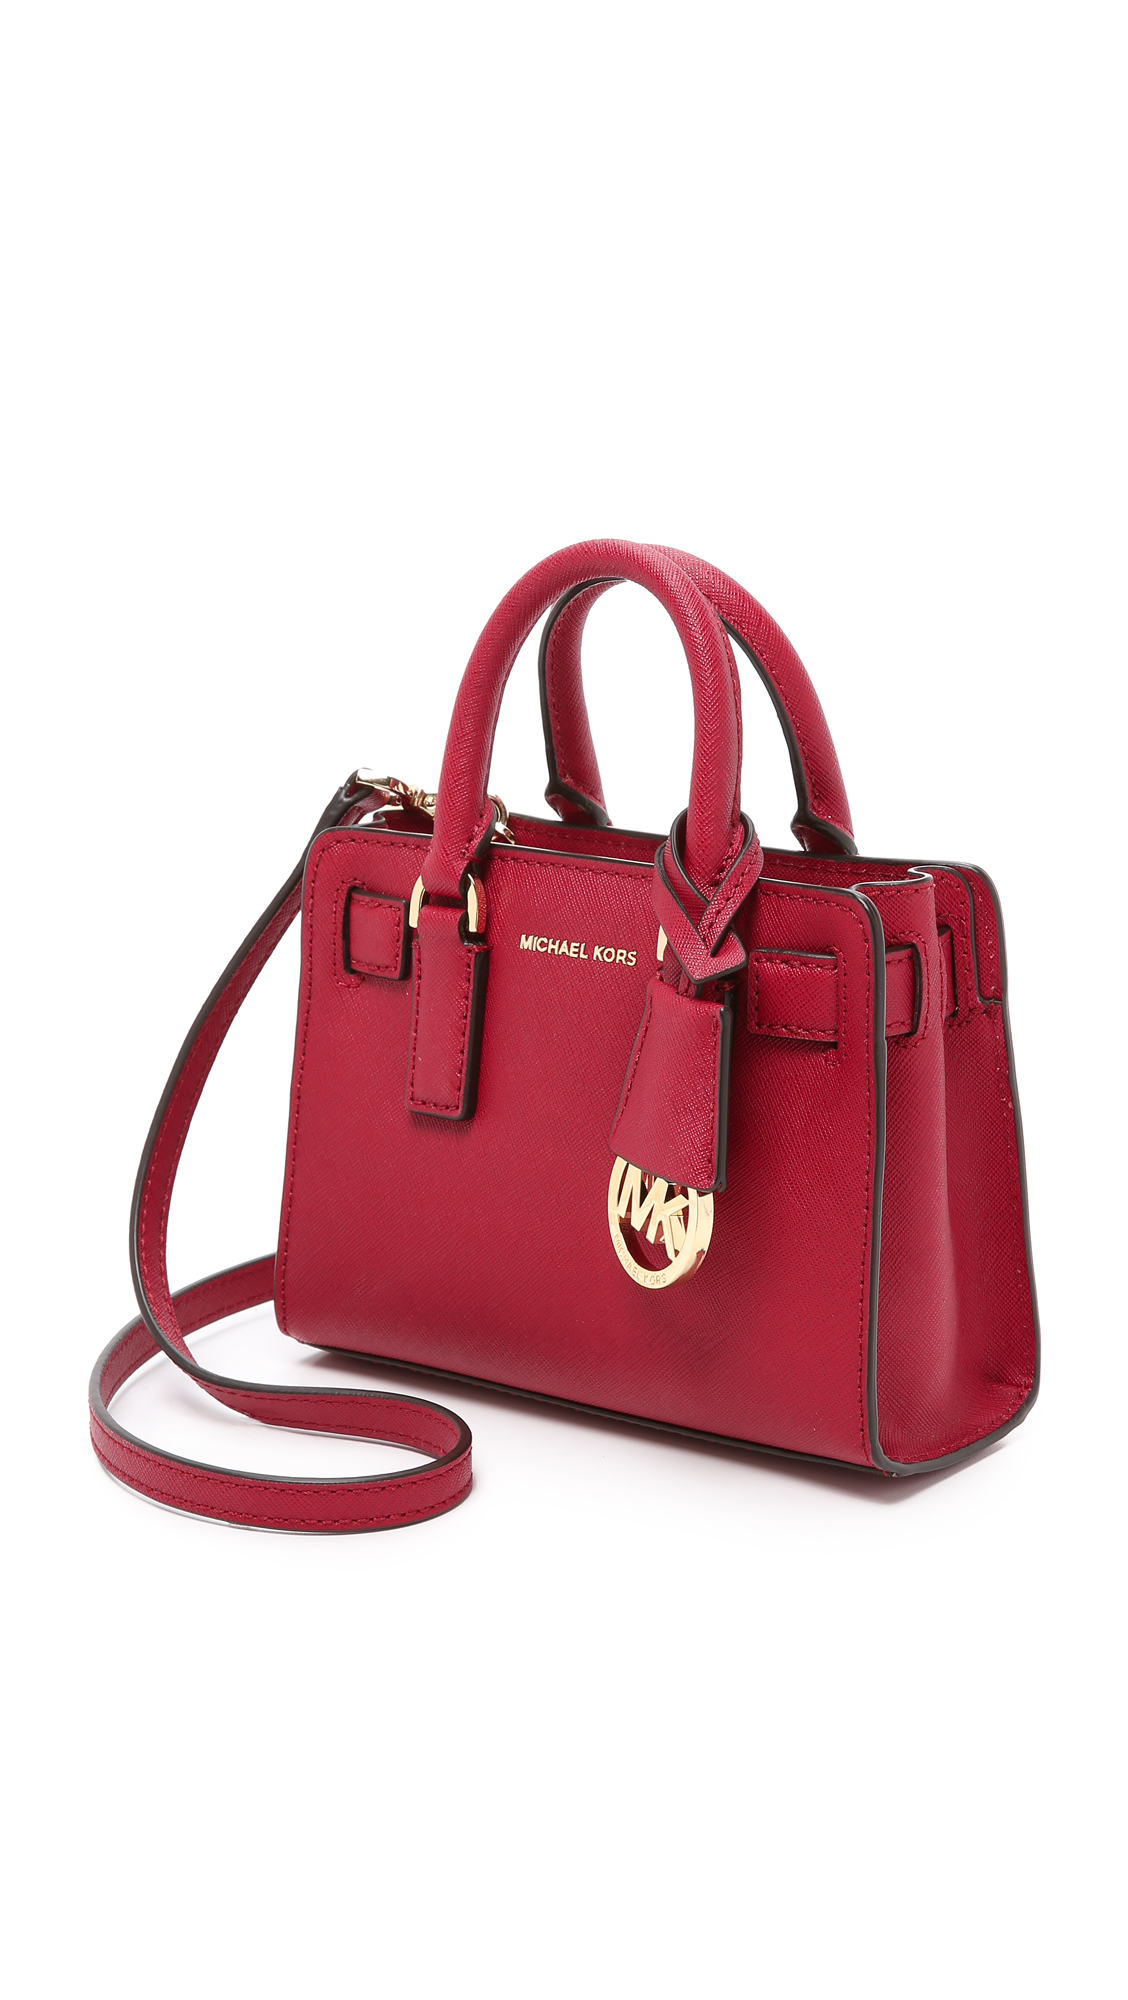 2841eced0fbc8 ... ireland michael michael kors dillon extra small cross body bag shopbop  fc883 f7f17